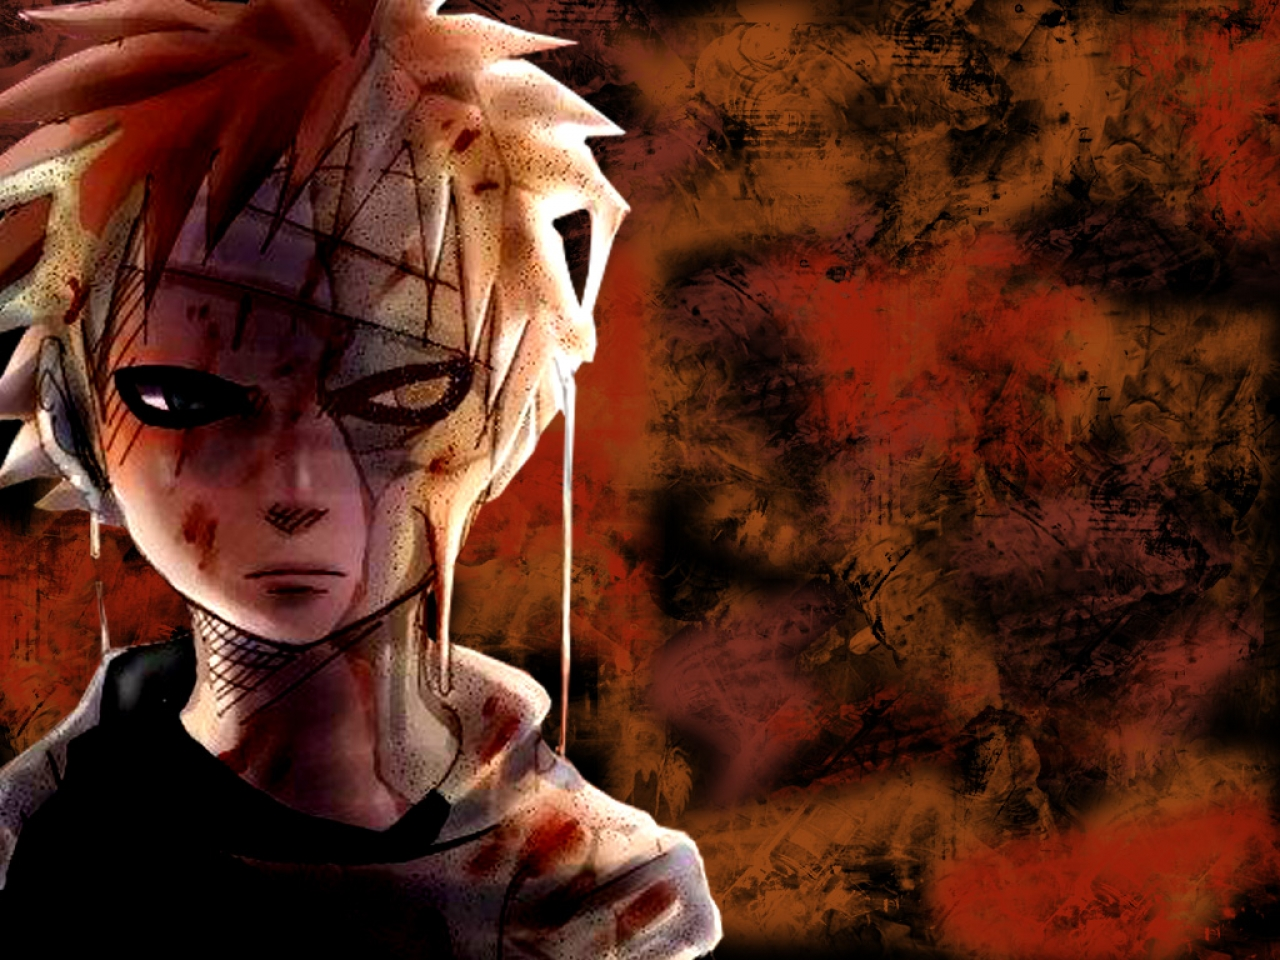 Naruto And Bleach Anime Wallpapers: Managa Style Gaara ...